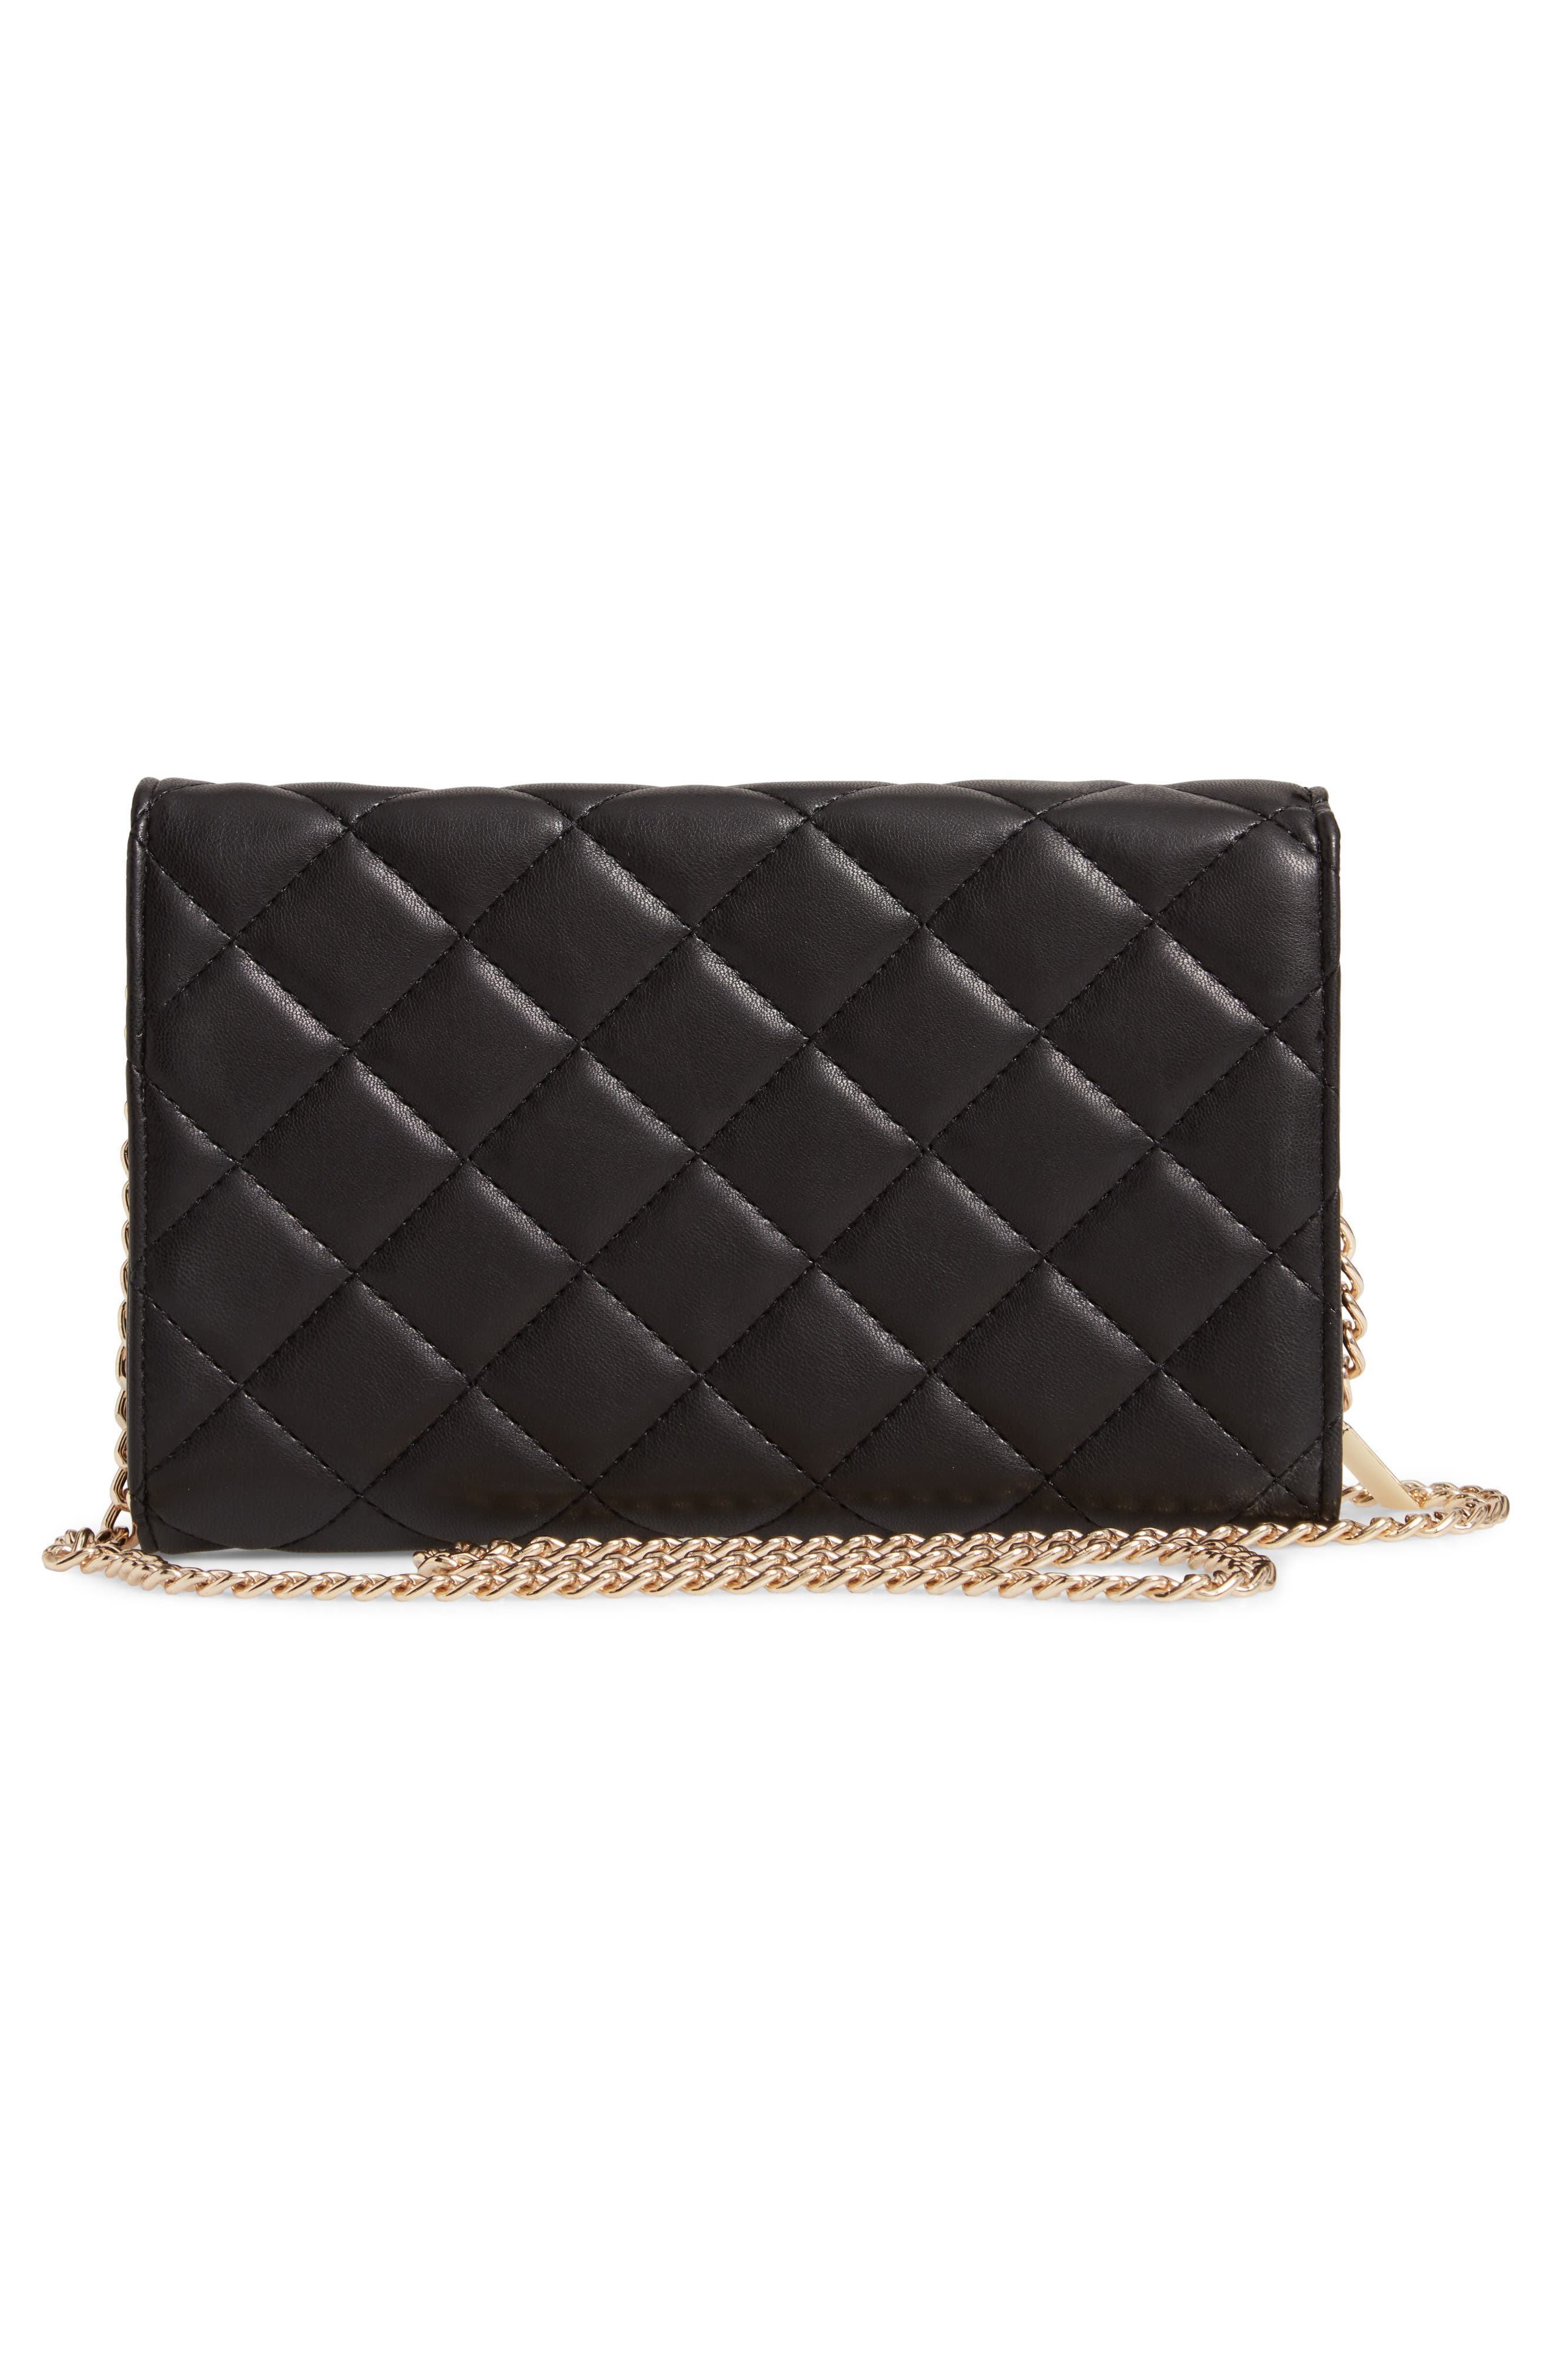 Mali + Lili Ciara Quilted Vegan Leather Convertible Clutch,                             Alternate thumbnail 3, color,                             BLACK